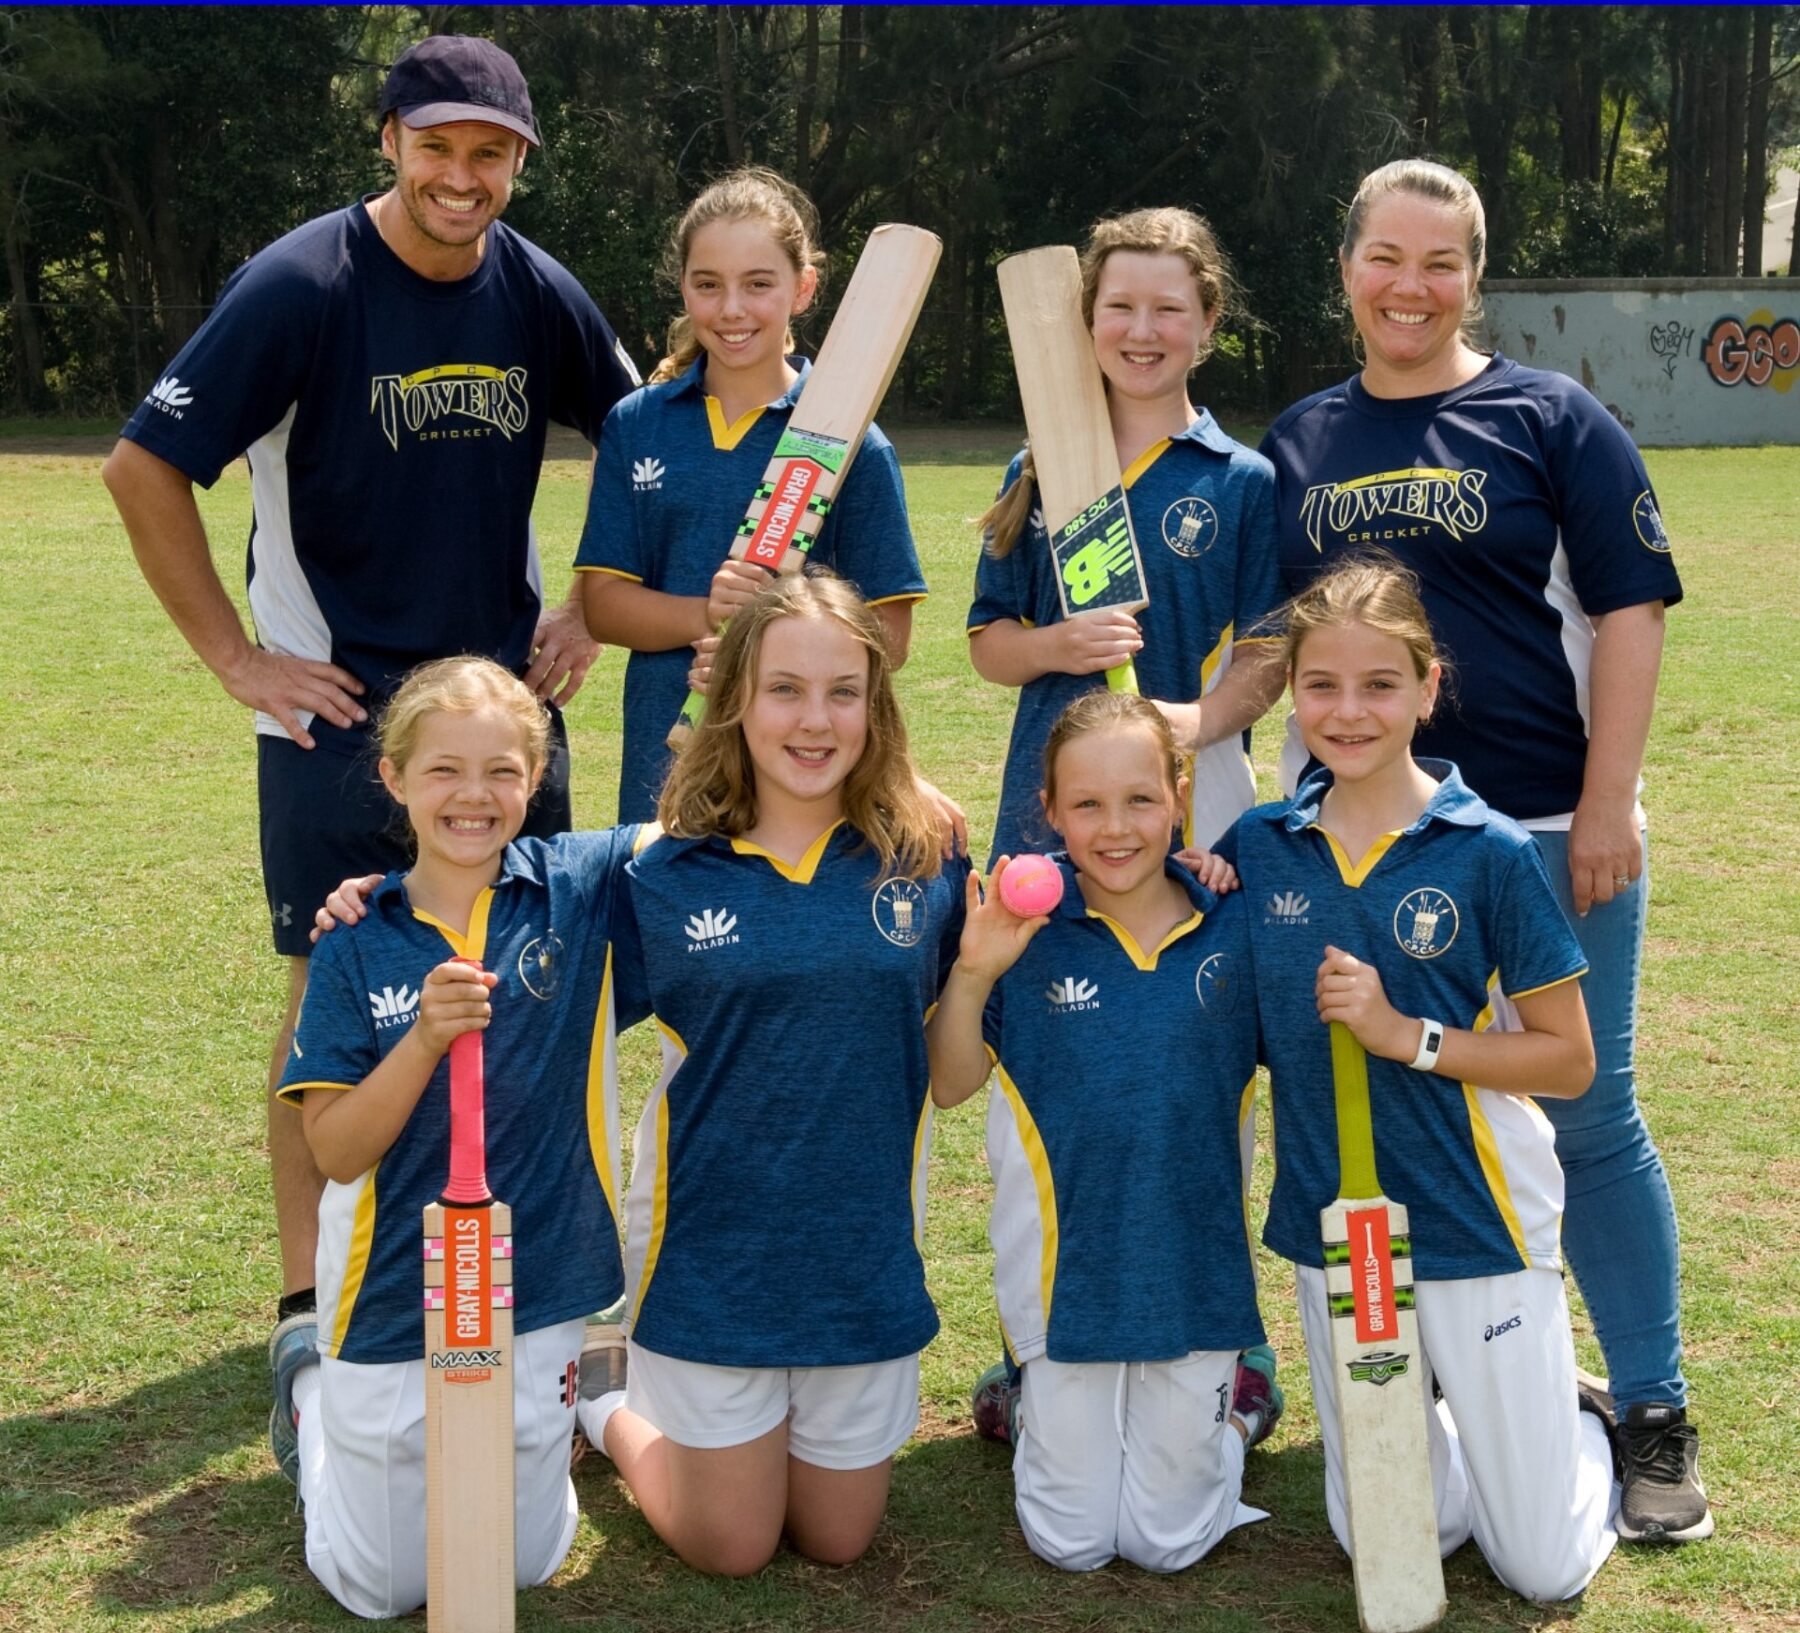 Sixers Girls U11s Team Photo 19/20